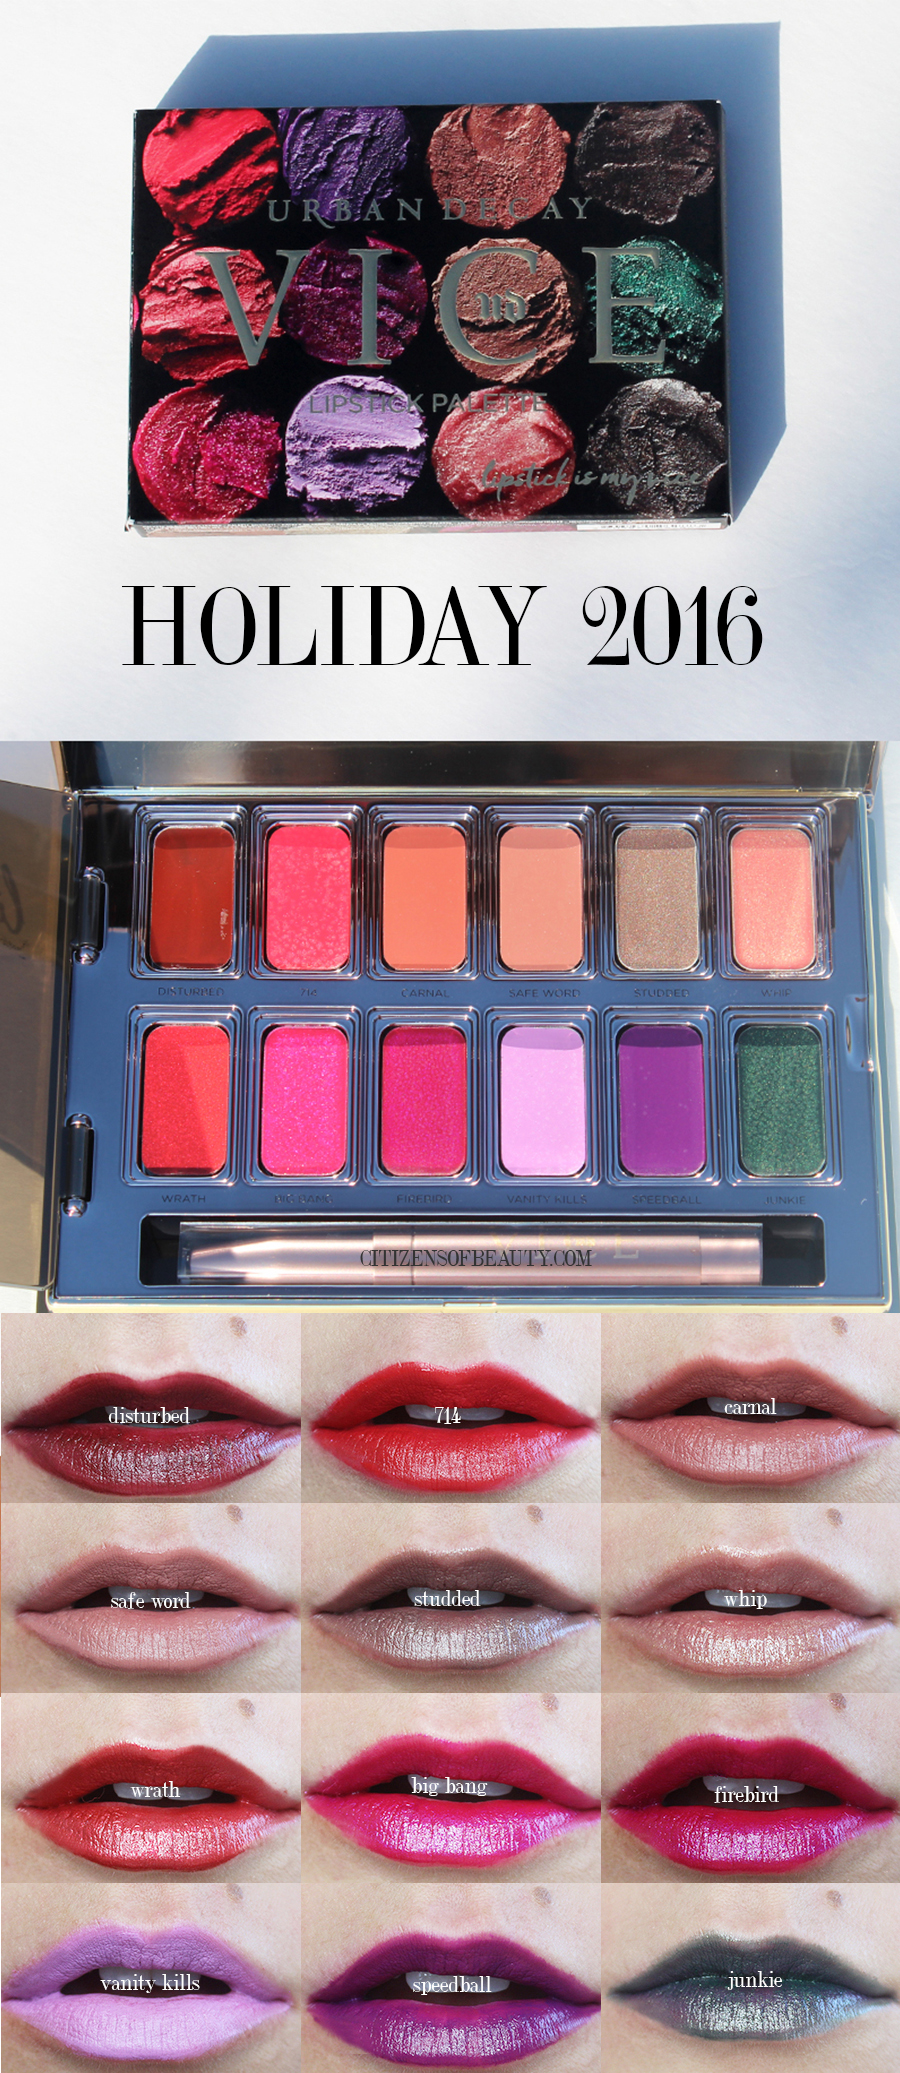 junkie-urban-decay-vice-lipstick-palette-holiday-2016-this-gorgeous-lipstick-palette-is-only-35